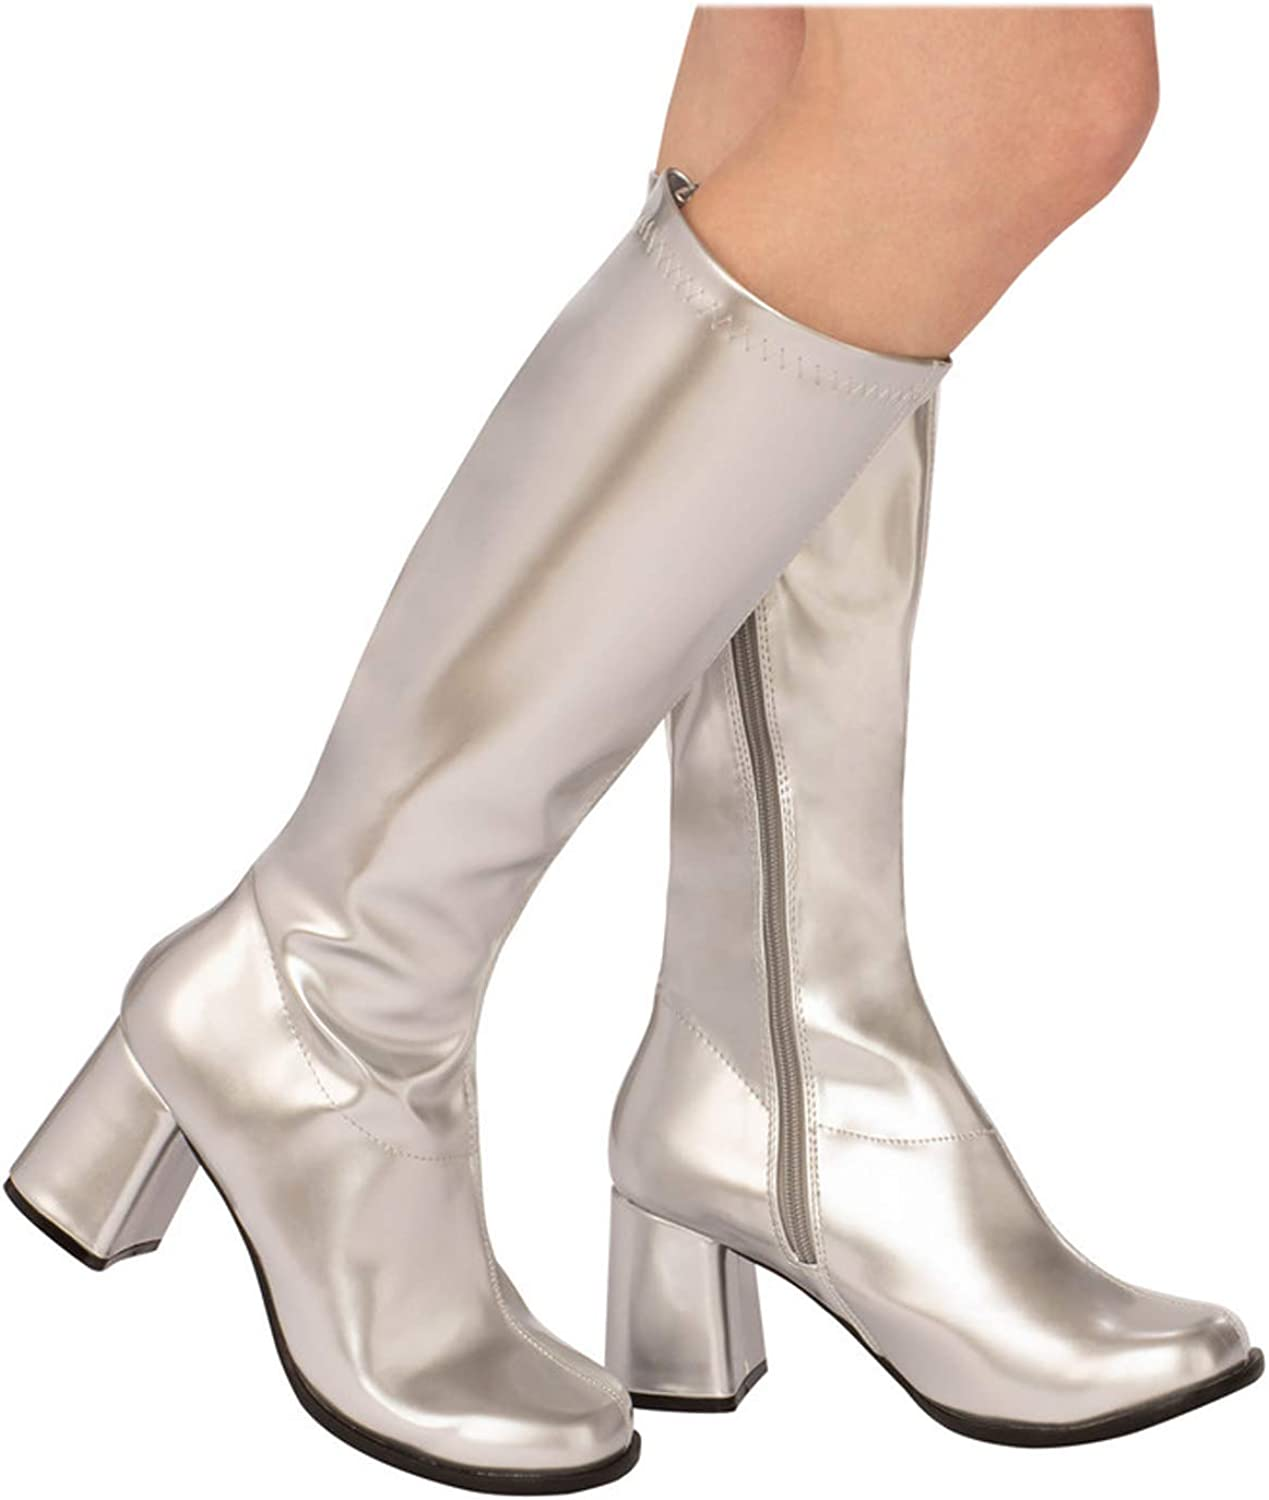 Go Go Boots Knee High Gogo Boots Adult Womens High Heel Shoes